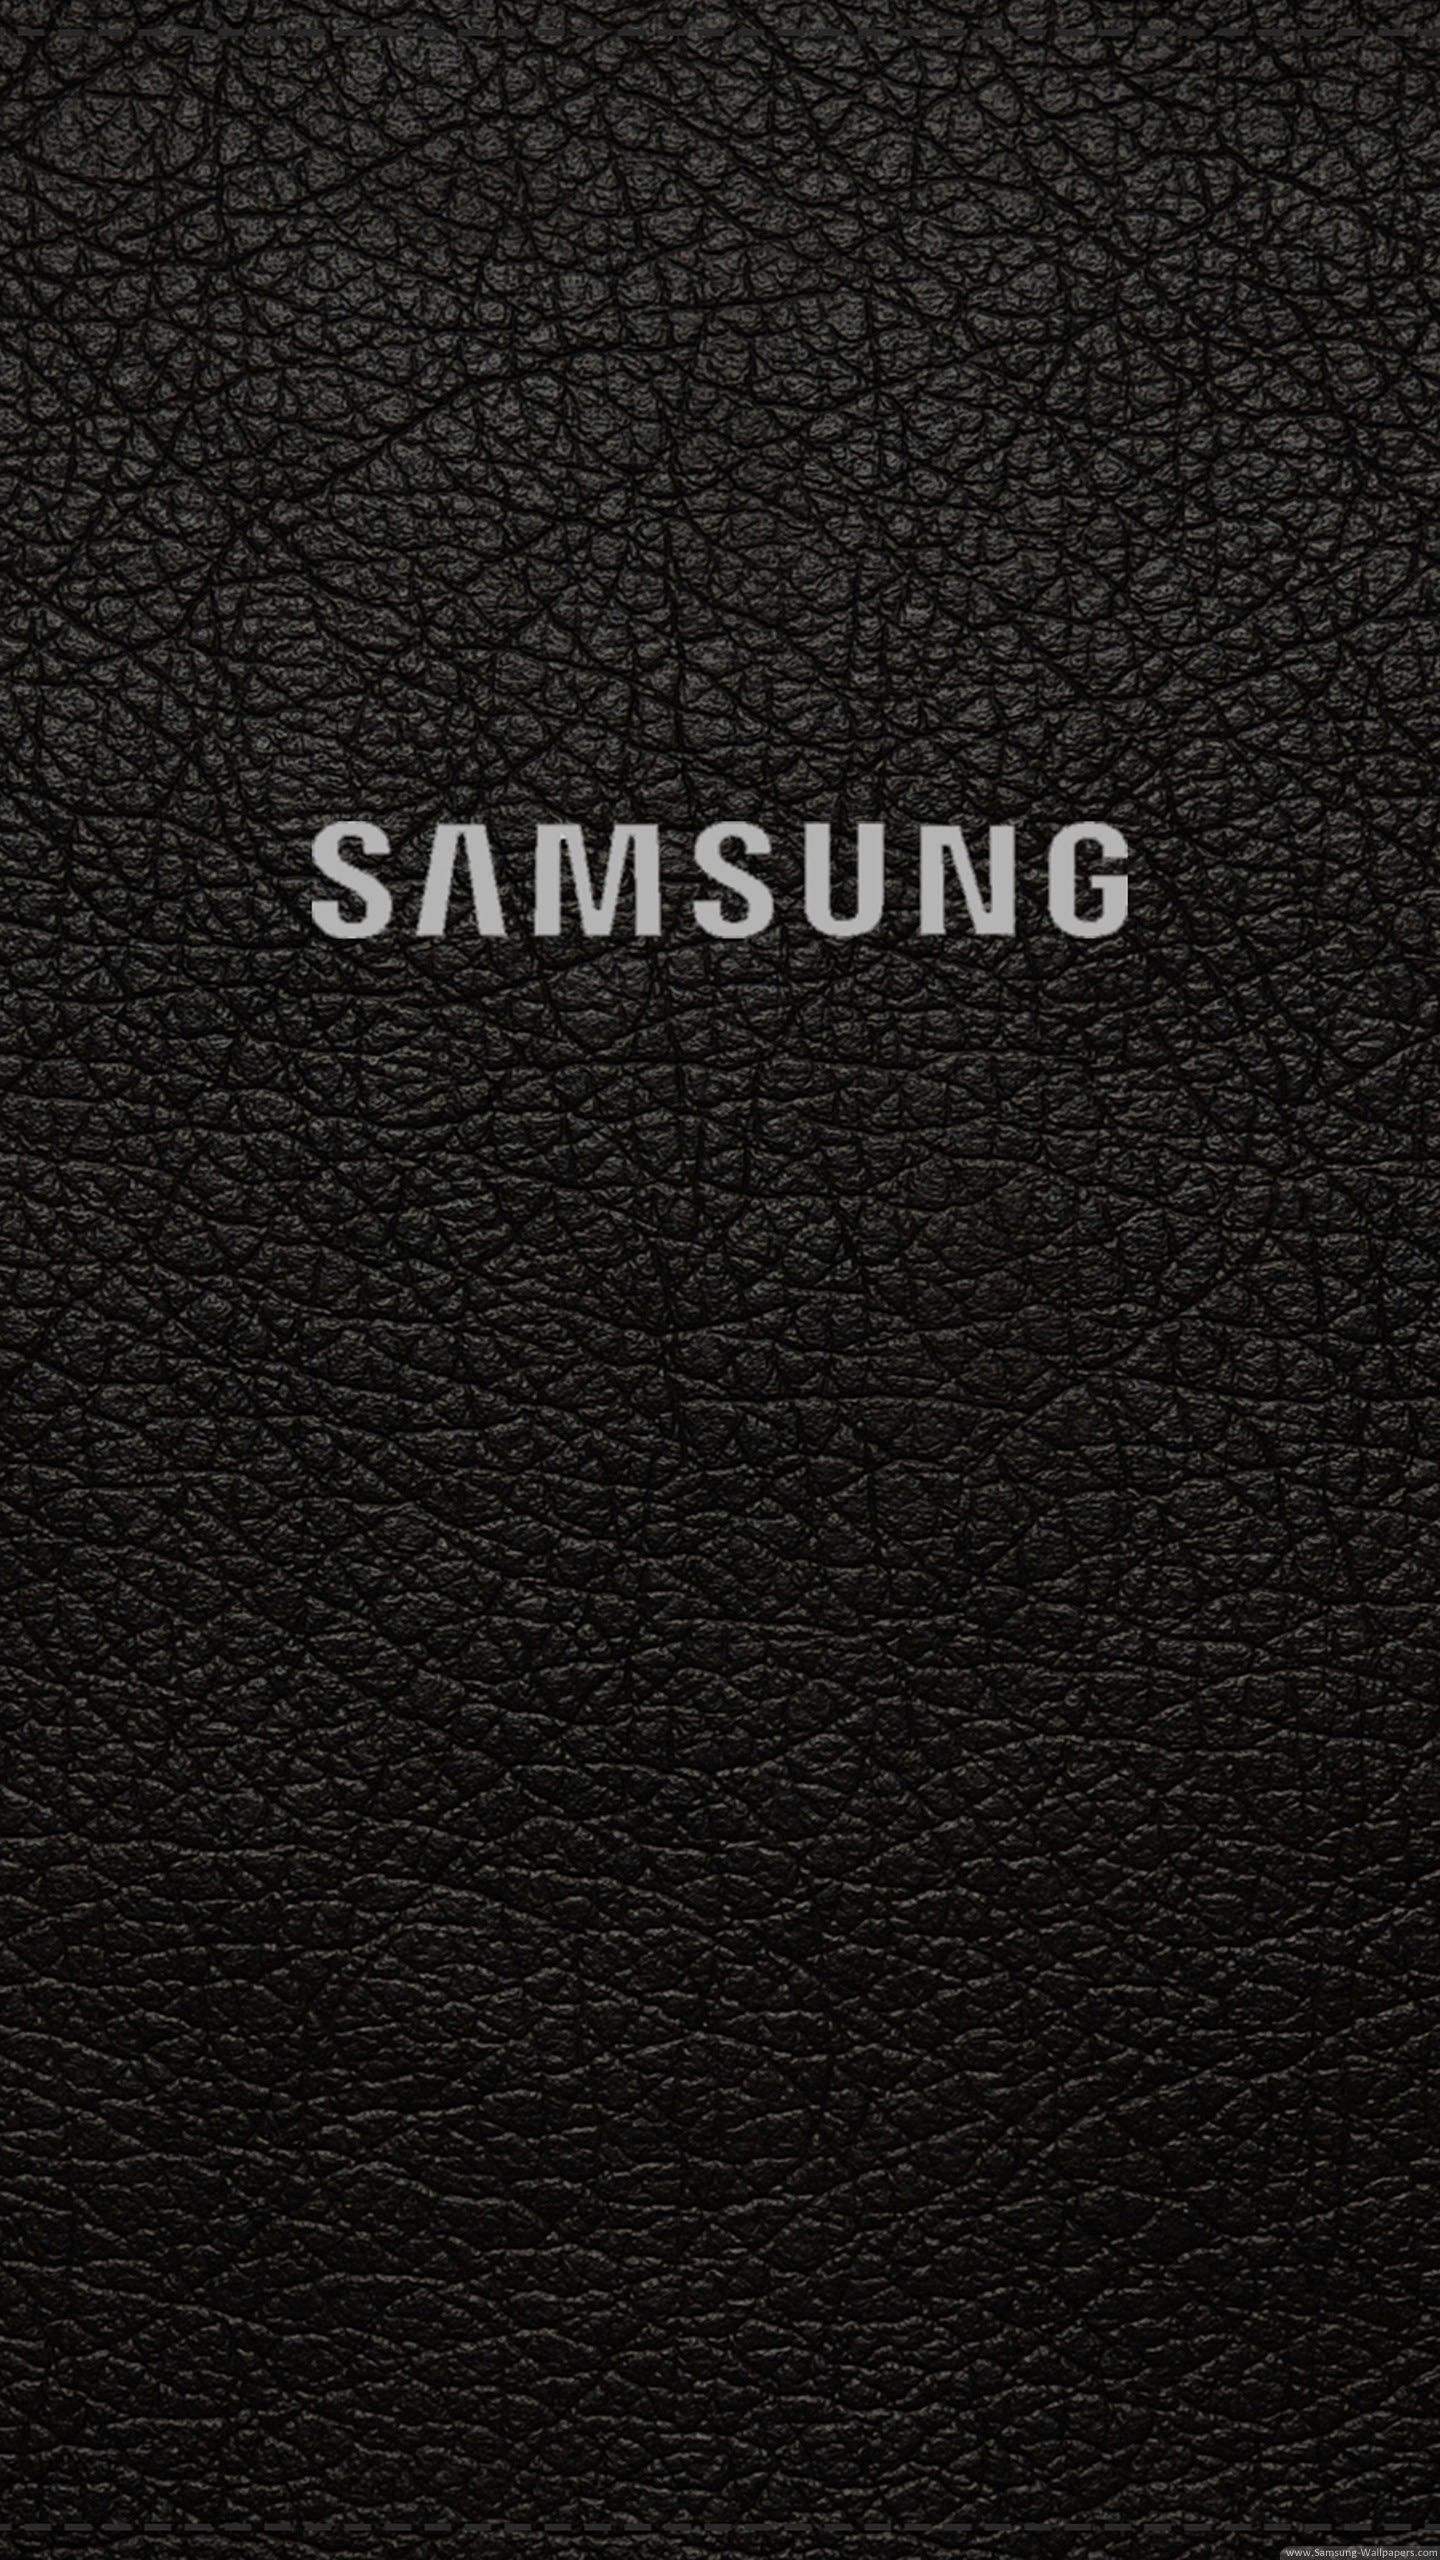 HD Samsung Wallpapers For Mobile Download Mobile wallpaper 1440x2560